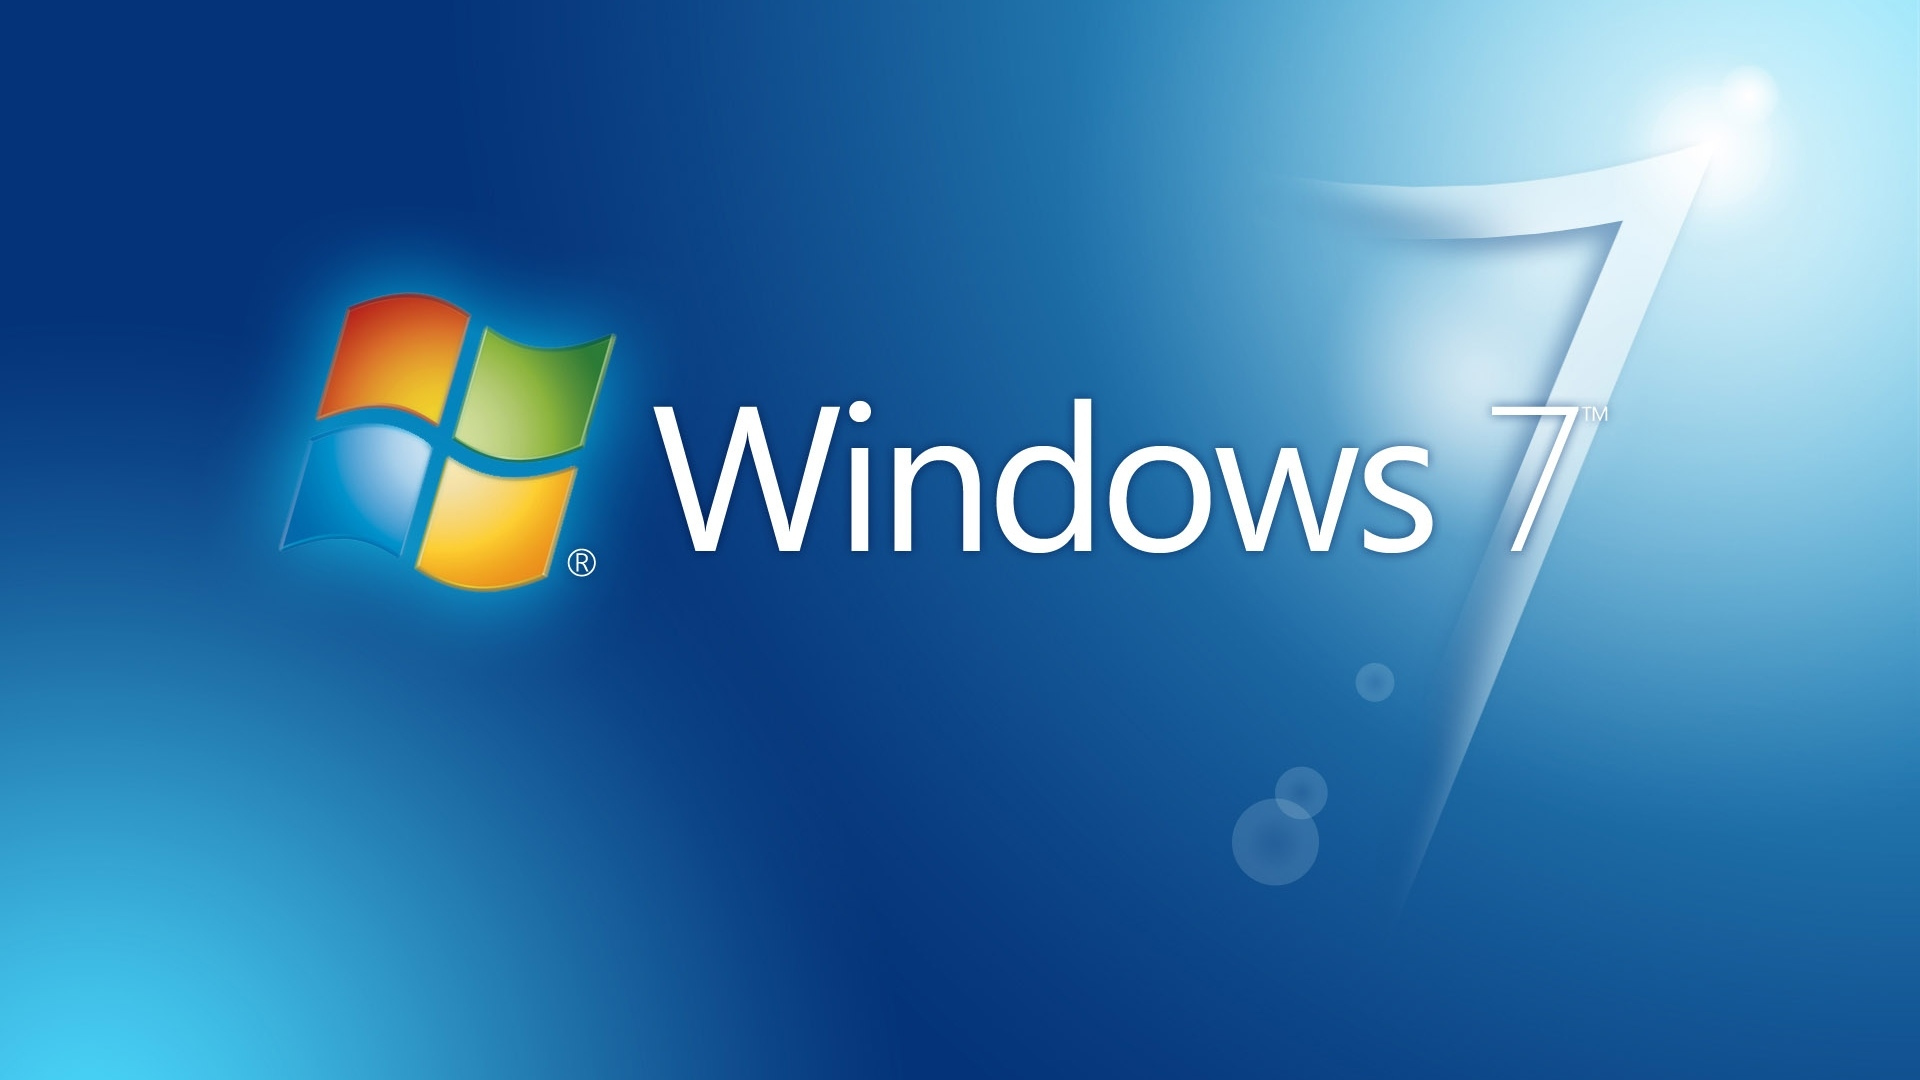 Windows 7 desktop background   SF Wallpaper 1920x1080